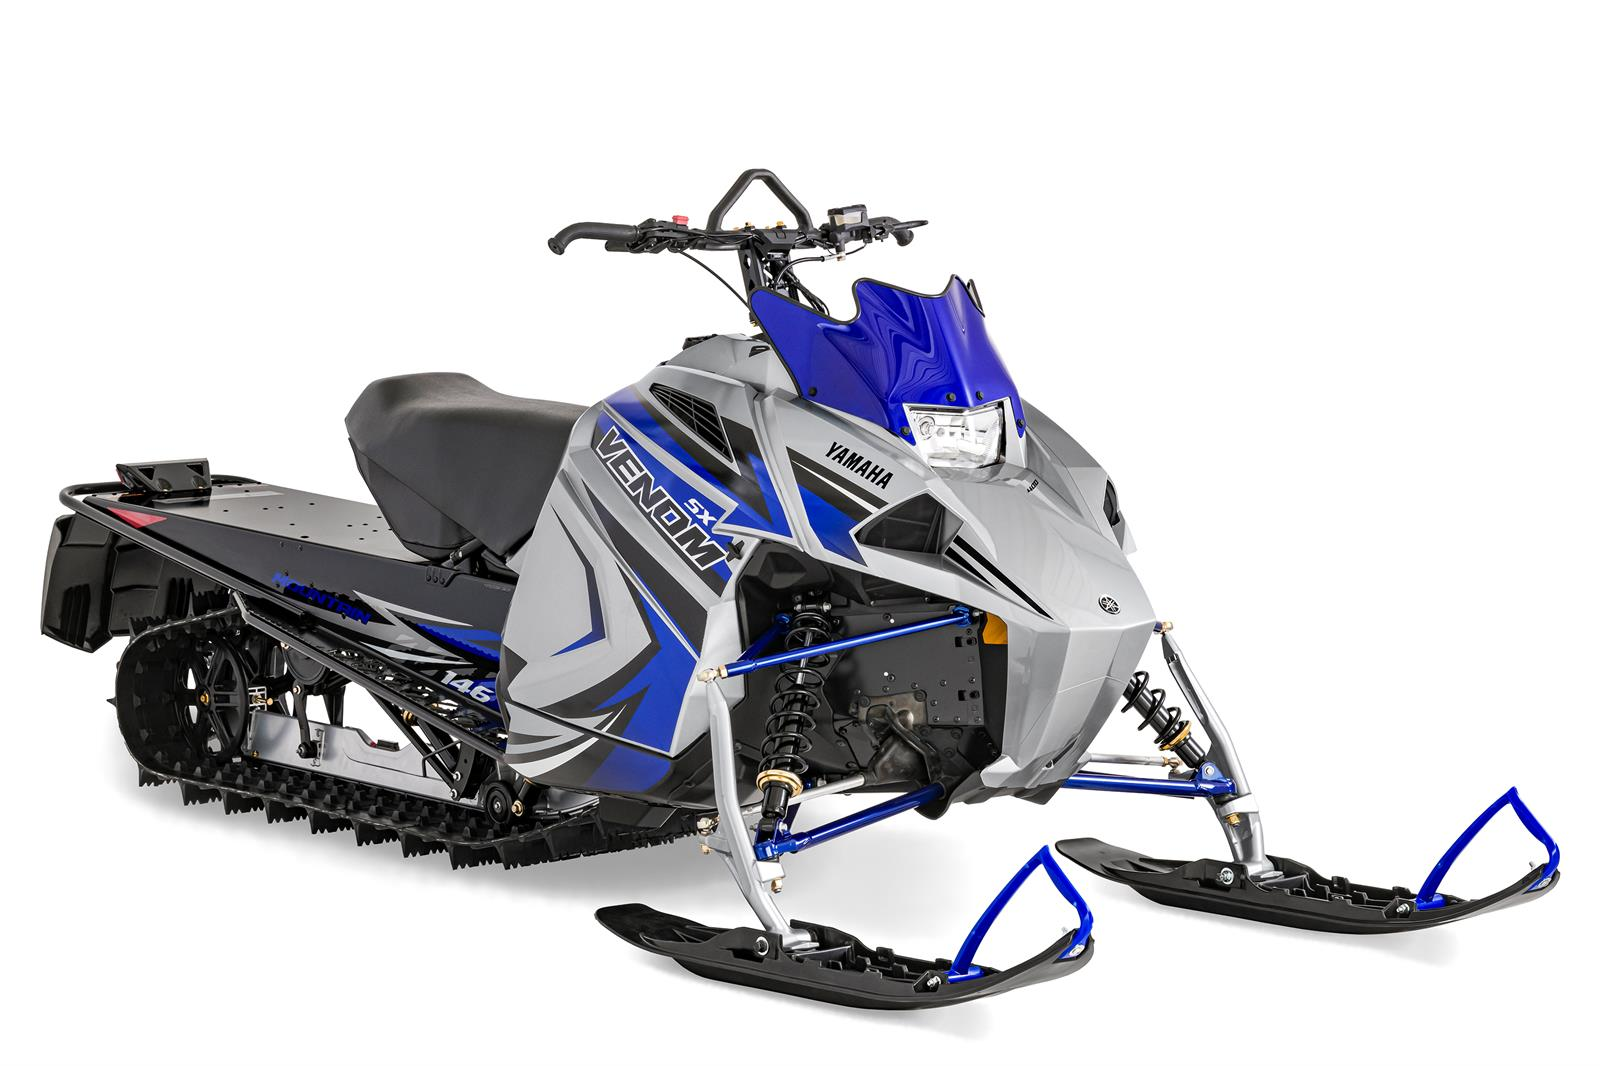 2022 Yamaha SXVenom Mountain in Bozeman, Montana - Photo 2